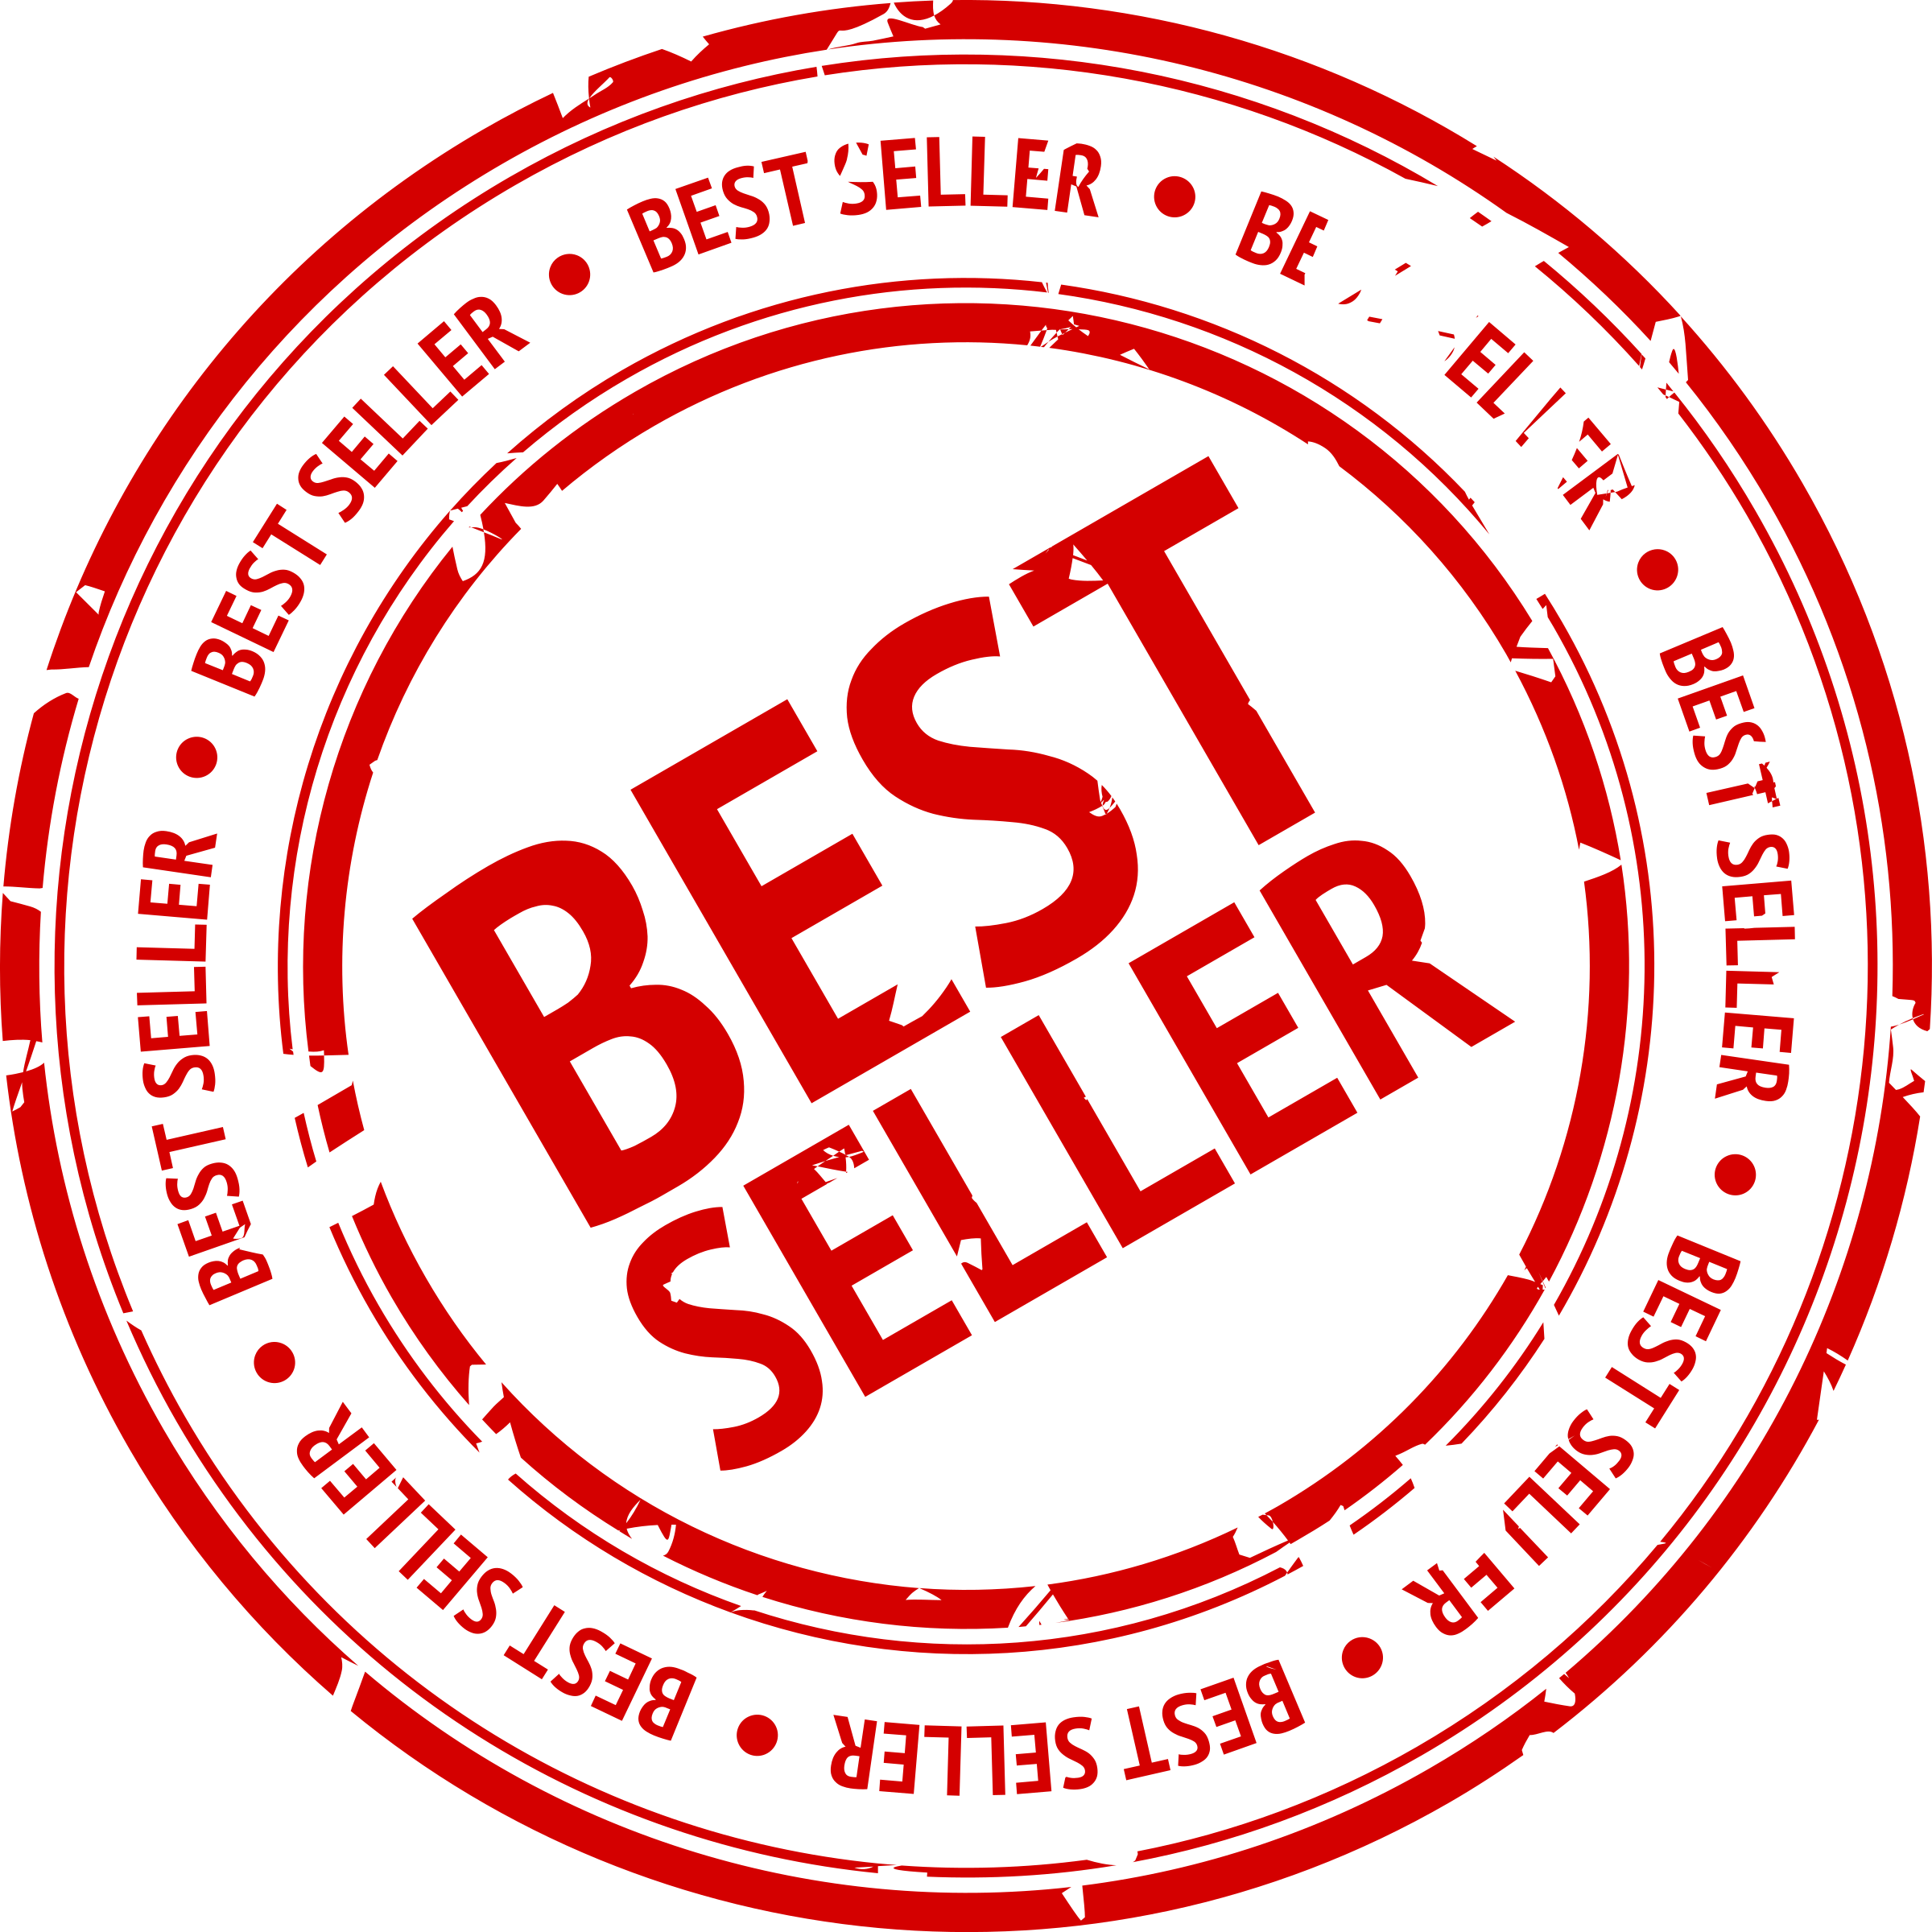 Free Best Seller Stamp Png image #24402